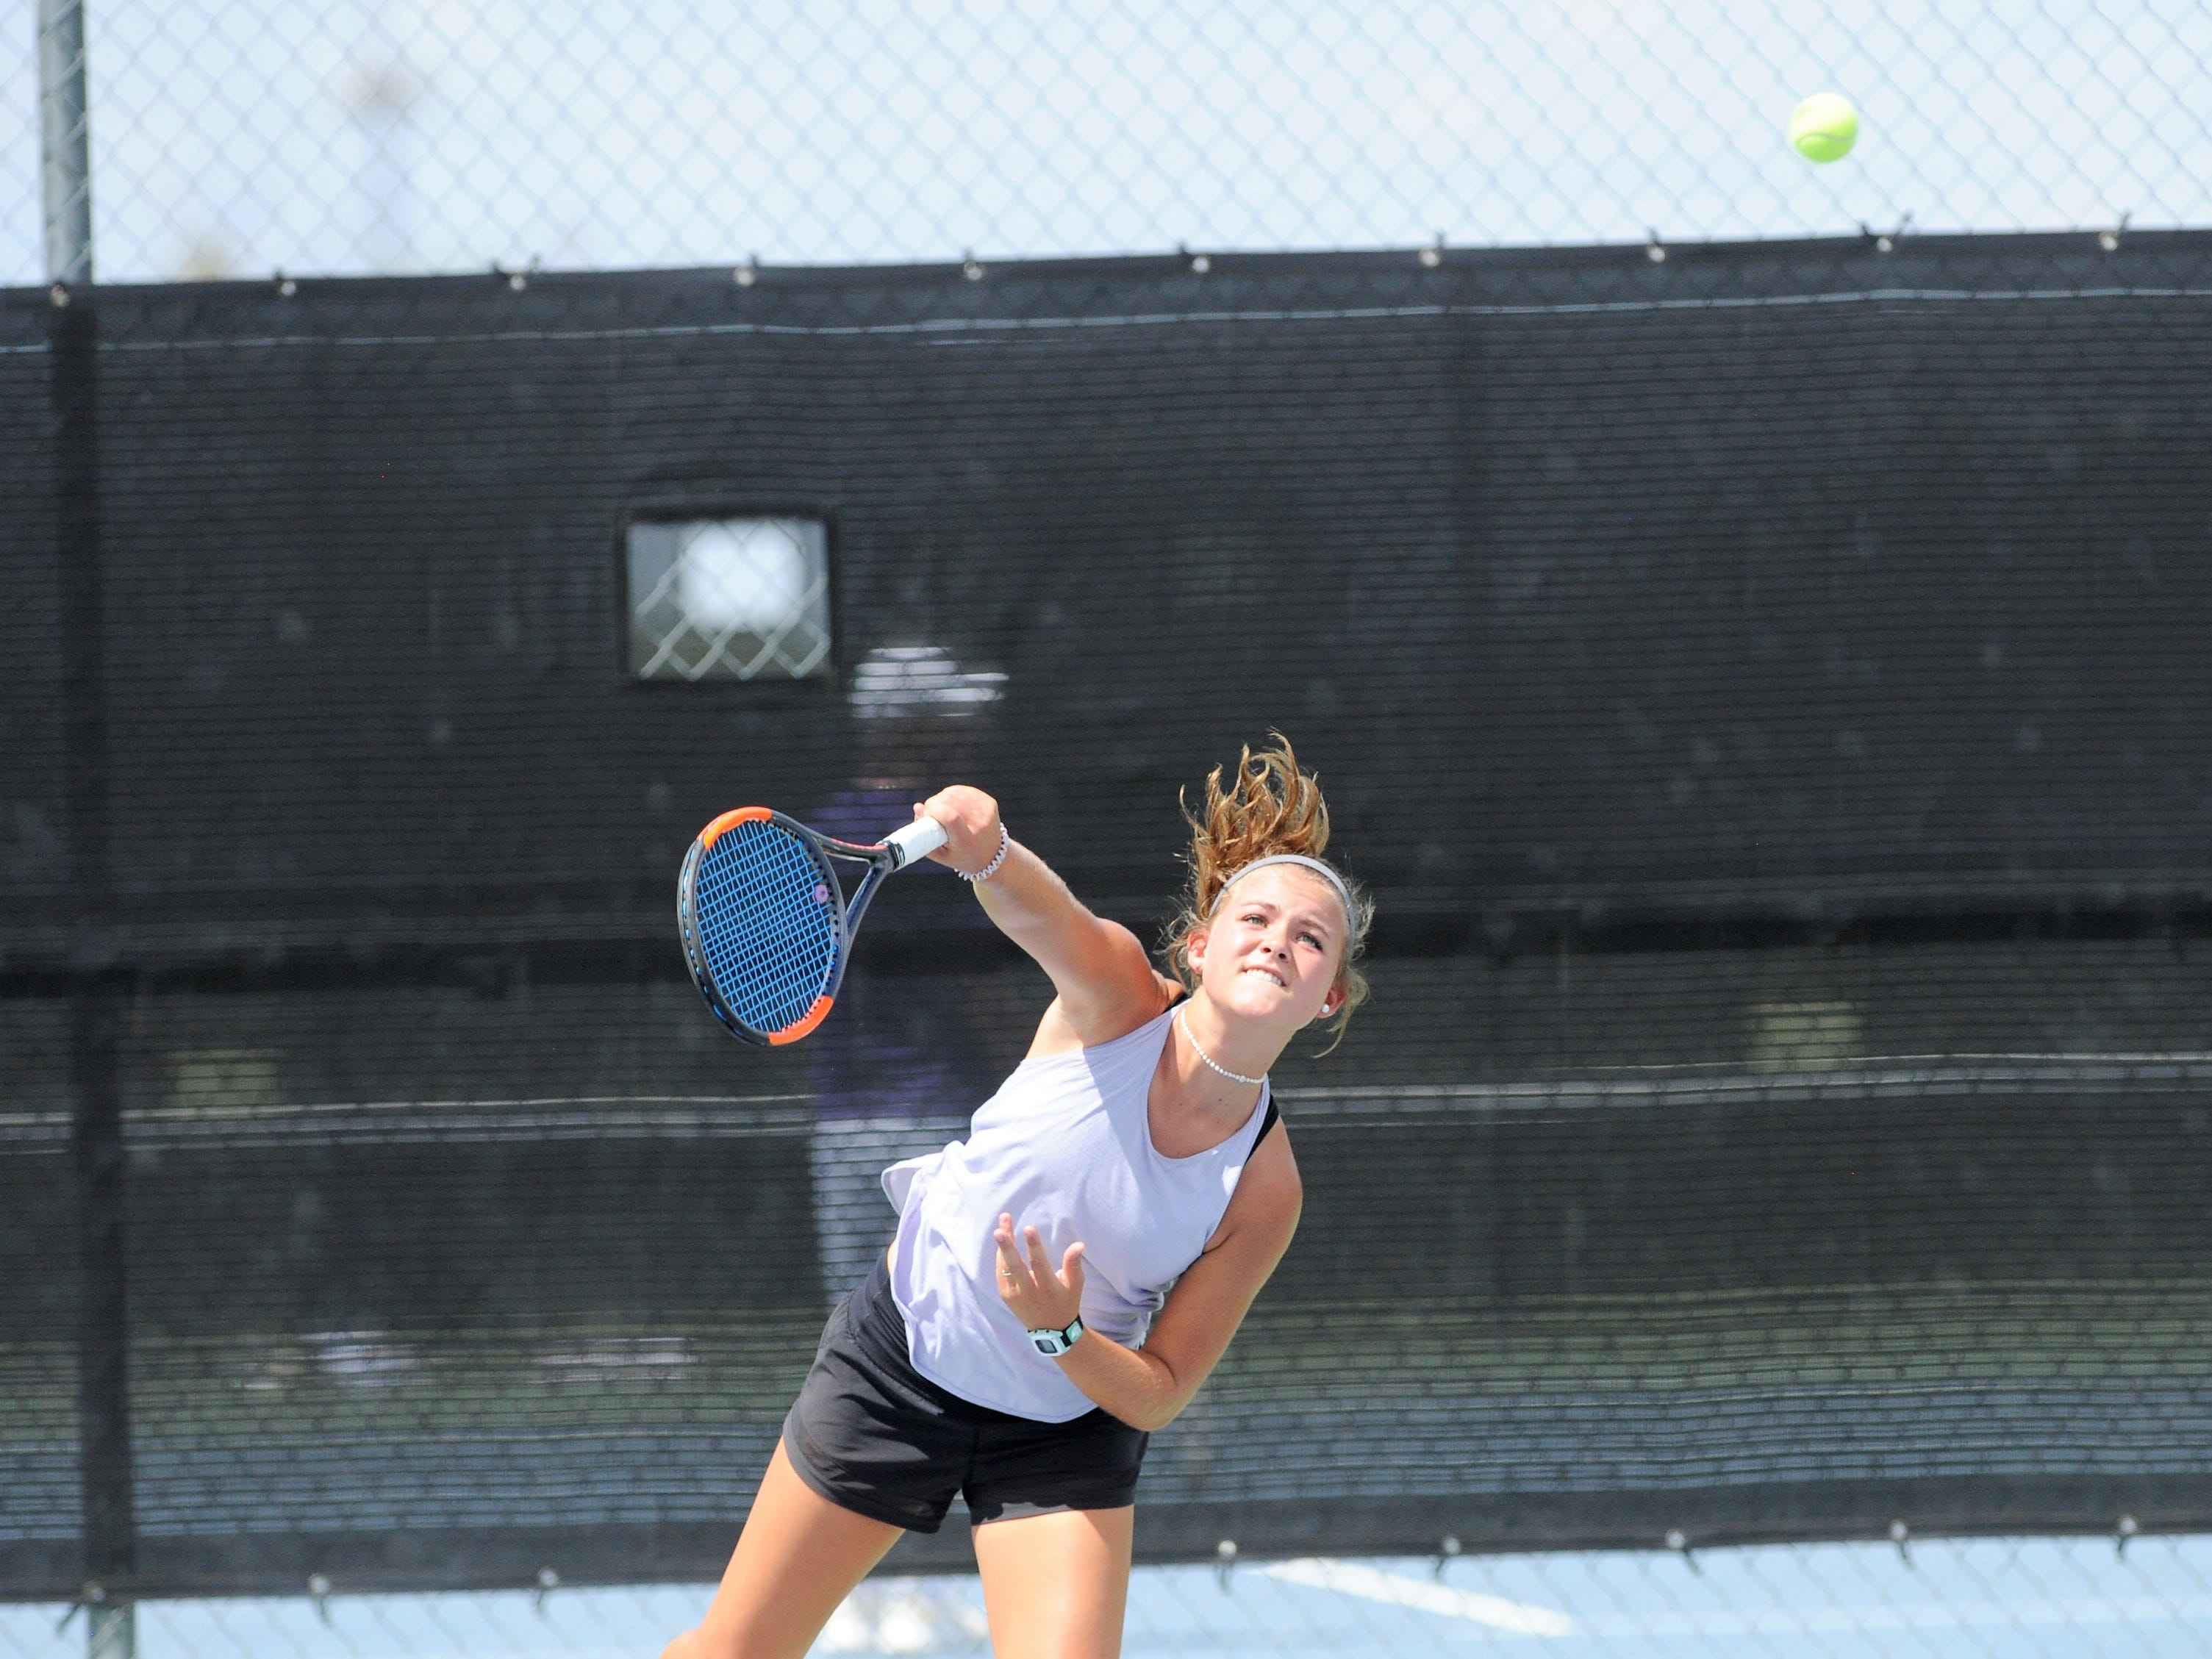 Wylie's Leighton Alford serves during Tuesday's match against Midlothian. Alford and girls doubles partner Analeah Elias won their match 6-0, 6-0 at No. 1 girls doubles.